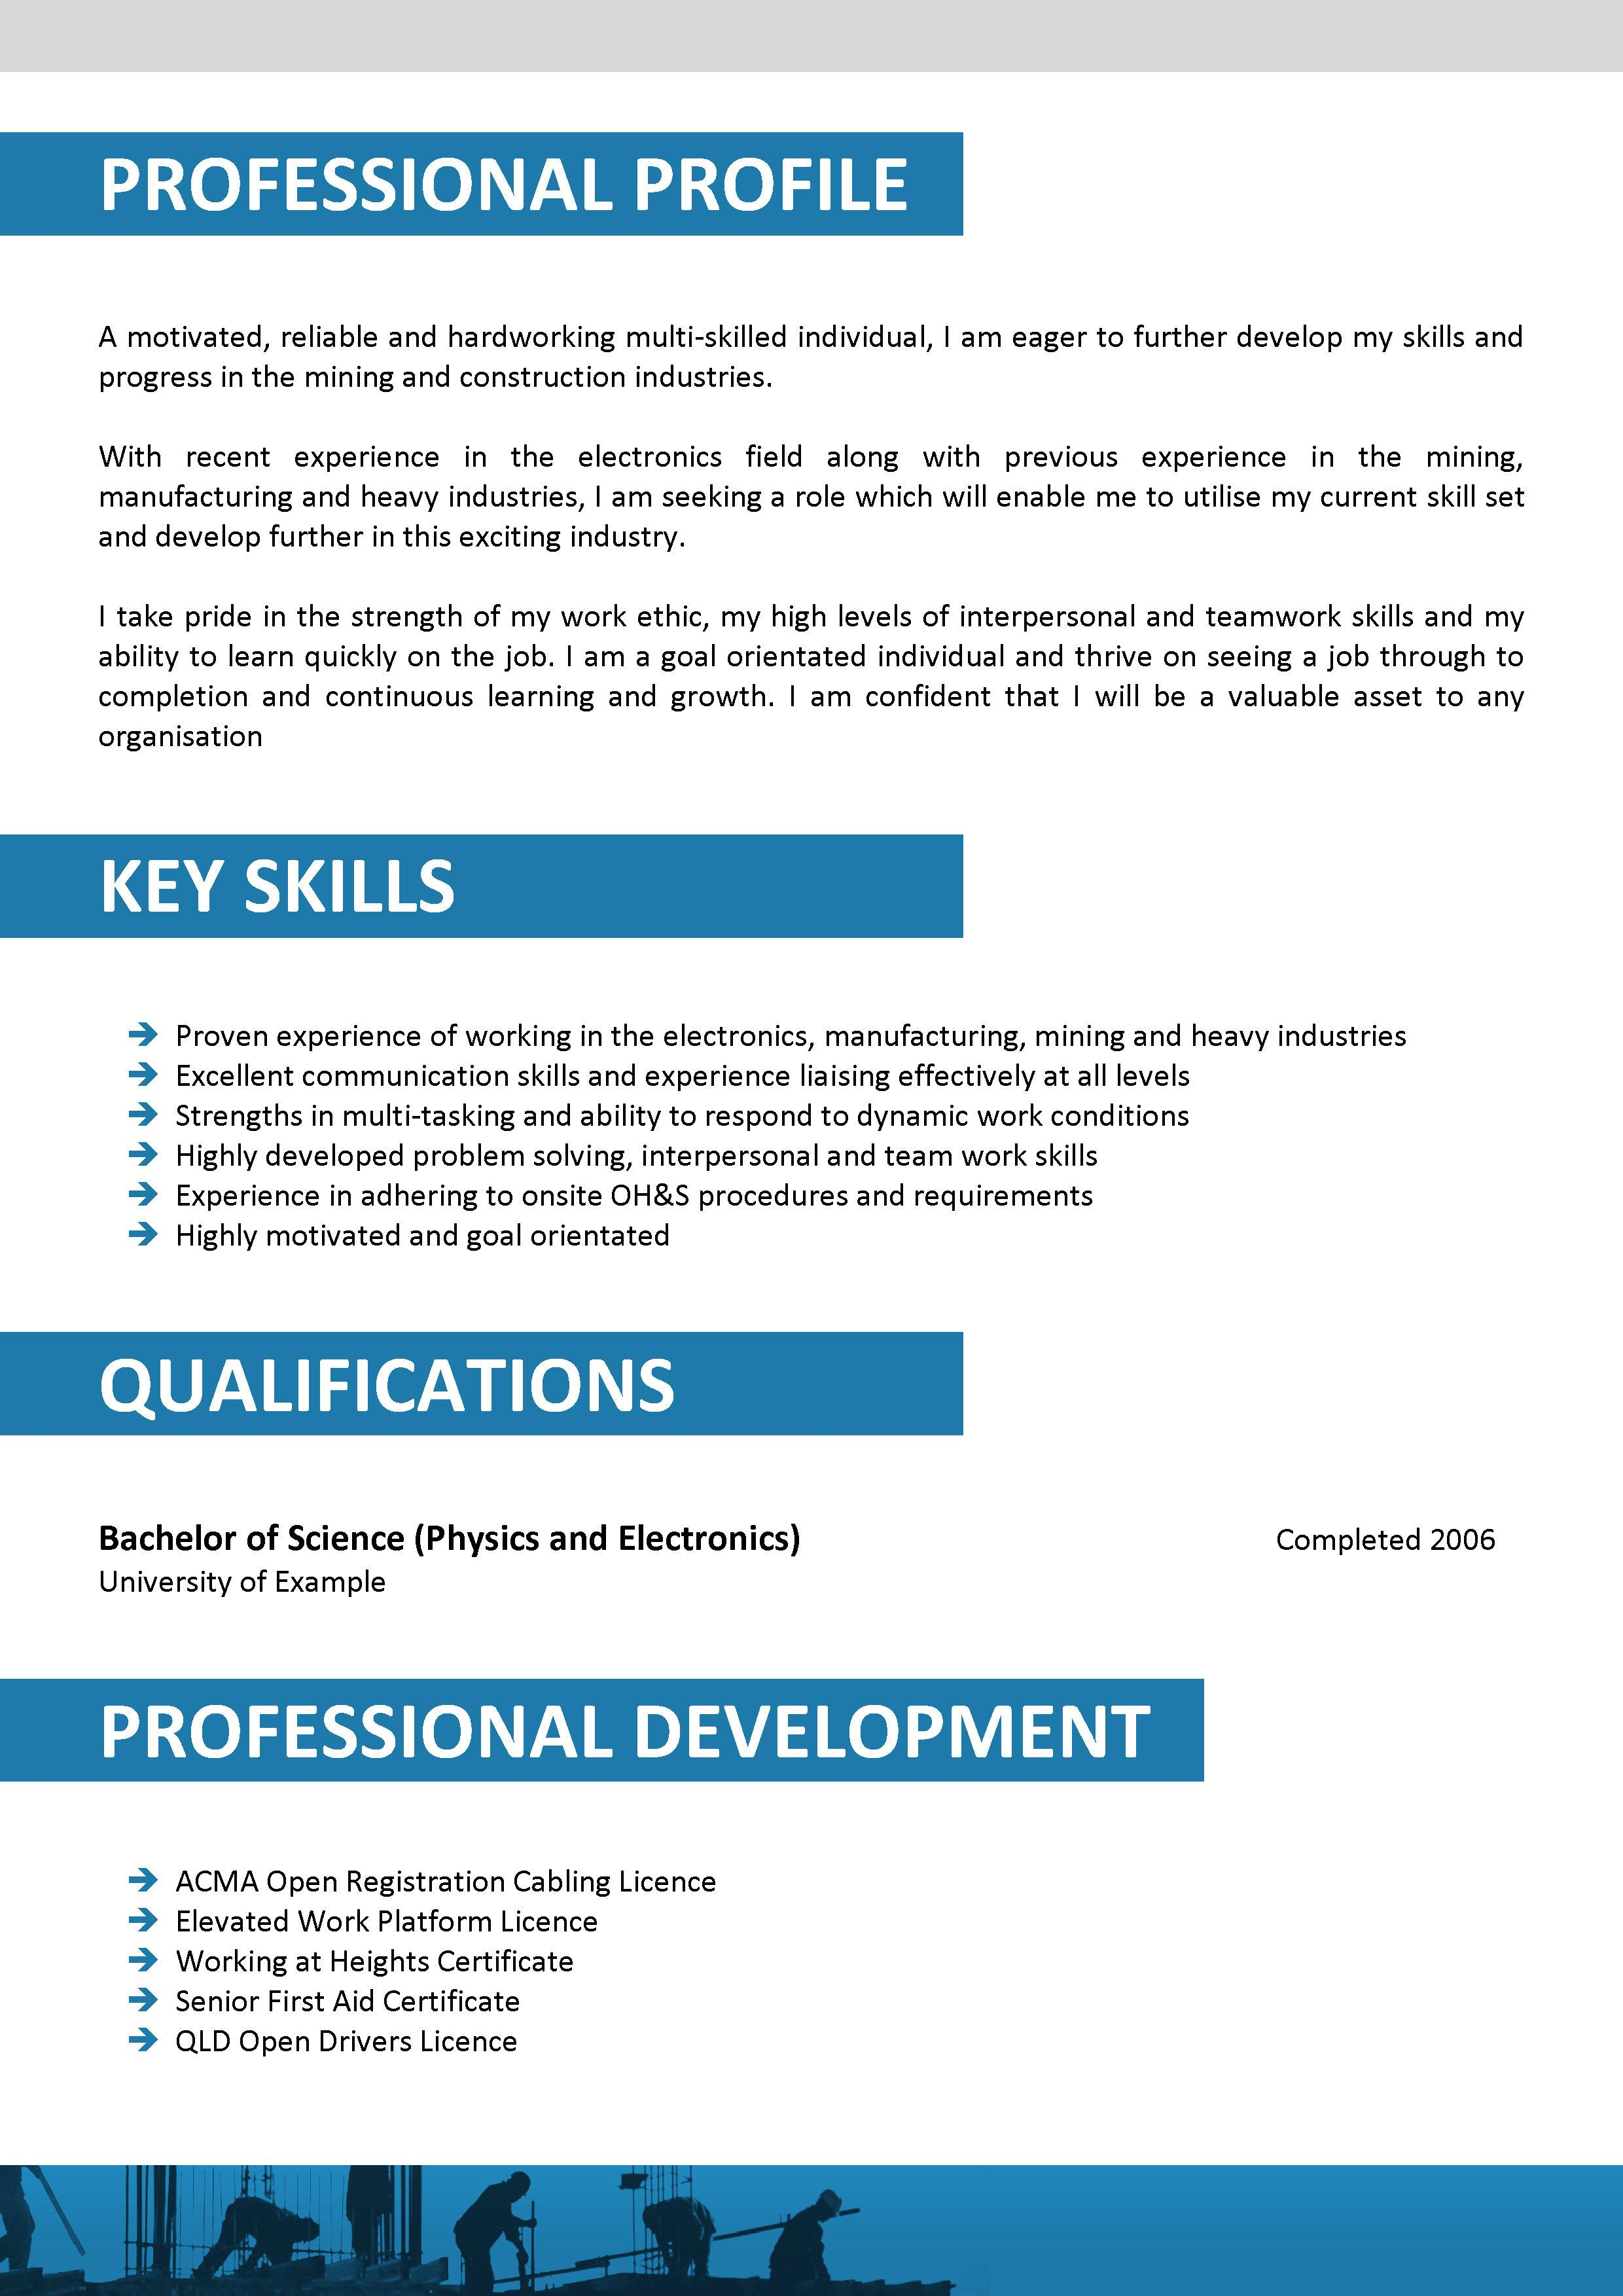 professional cv template docx how to write a cv 18 professional cv templates examples professional cv